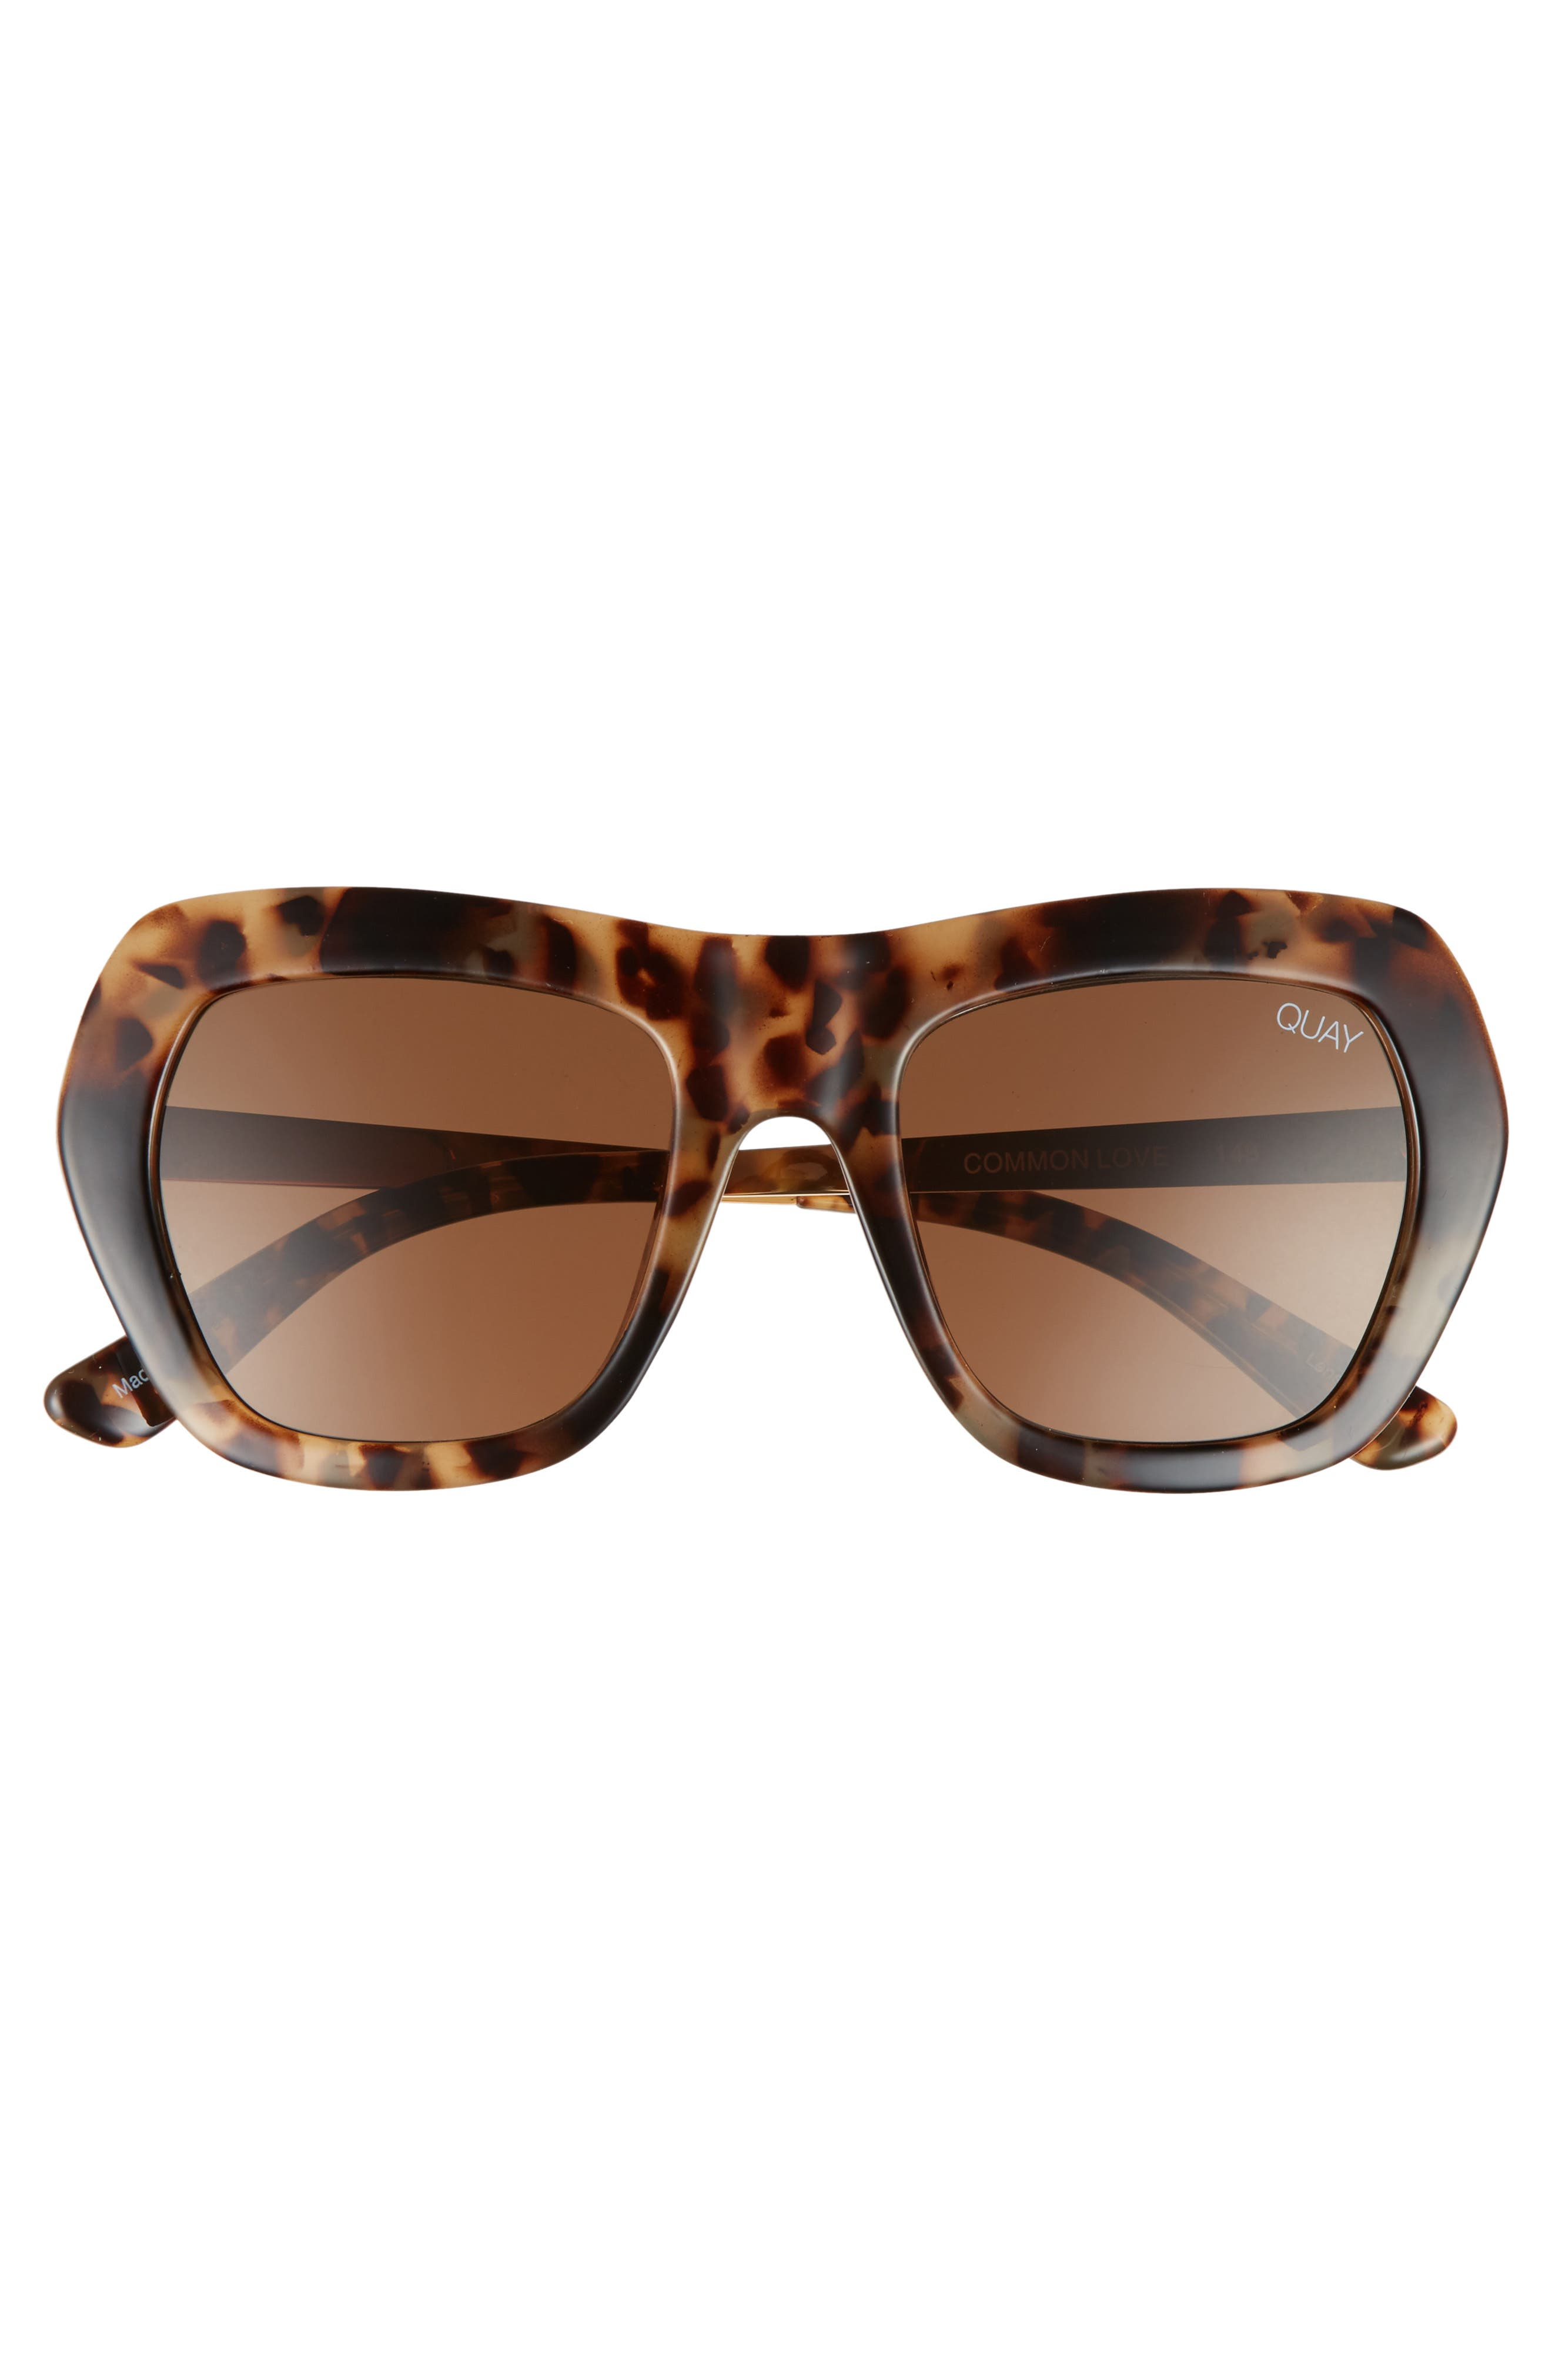 Common Love 53mm Square Sunglasses,                             Alternate thumbnail 7, color,                             Tort/ Brown